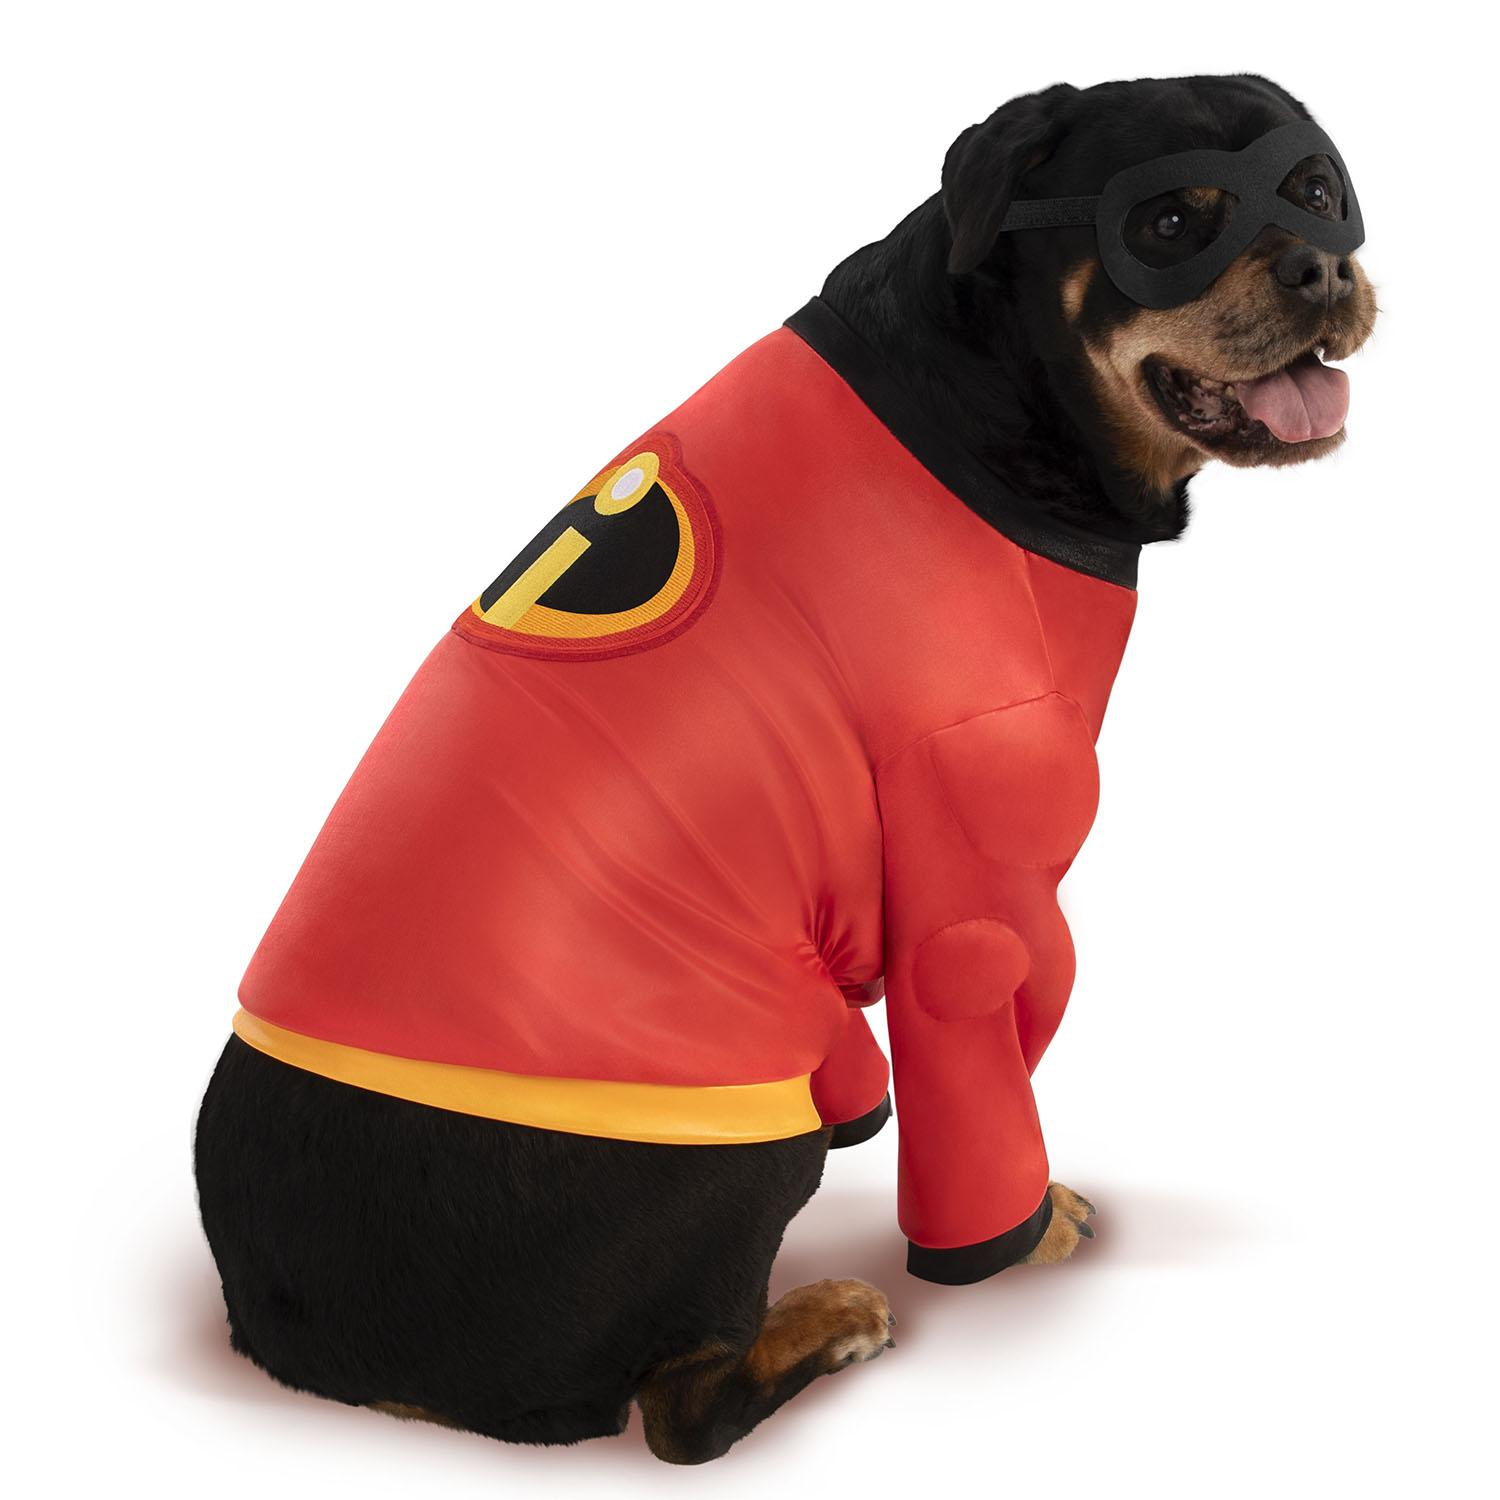 Big Dog Incredibles Dog Costume by Rubie's